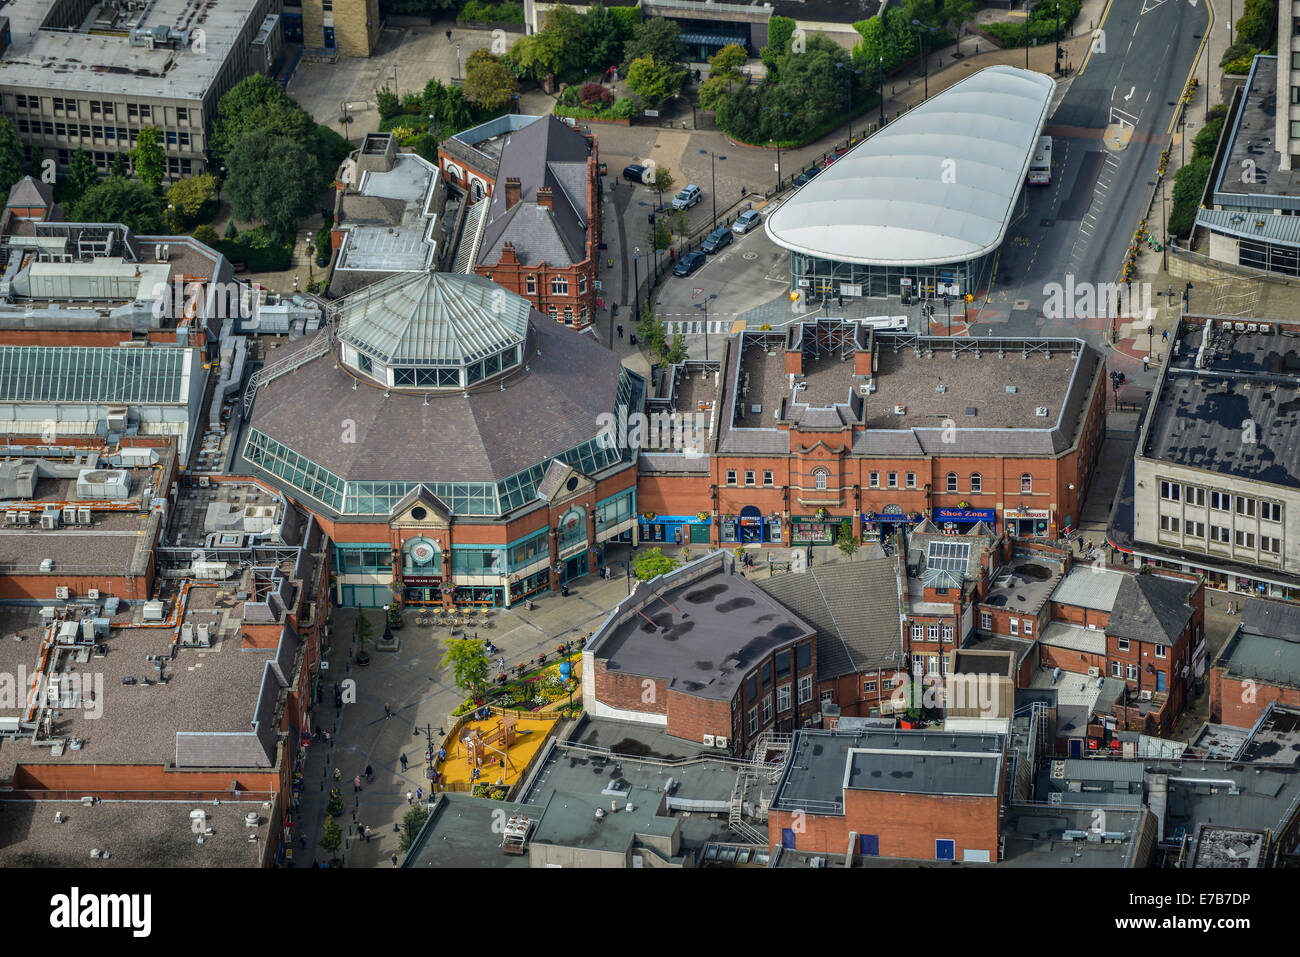 An aerial view of The Spindles, a Shopping Centre in Oldham, a town in Greater Manchester, UK. - Stock Image